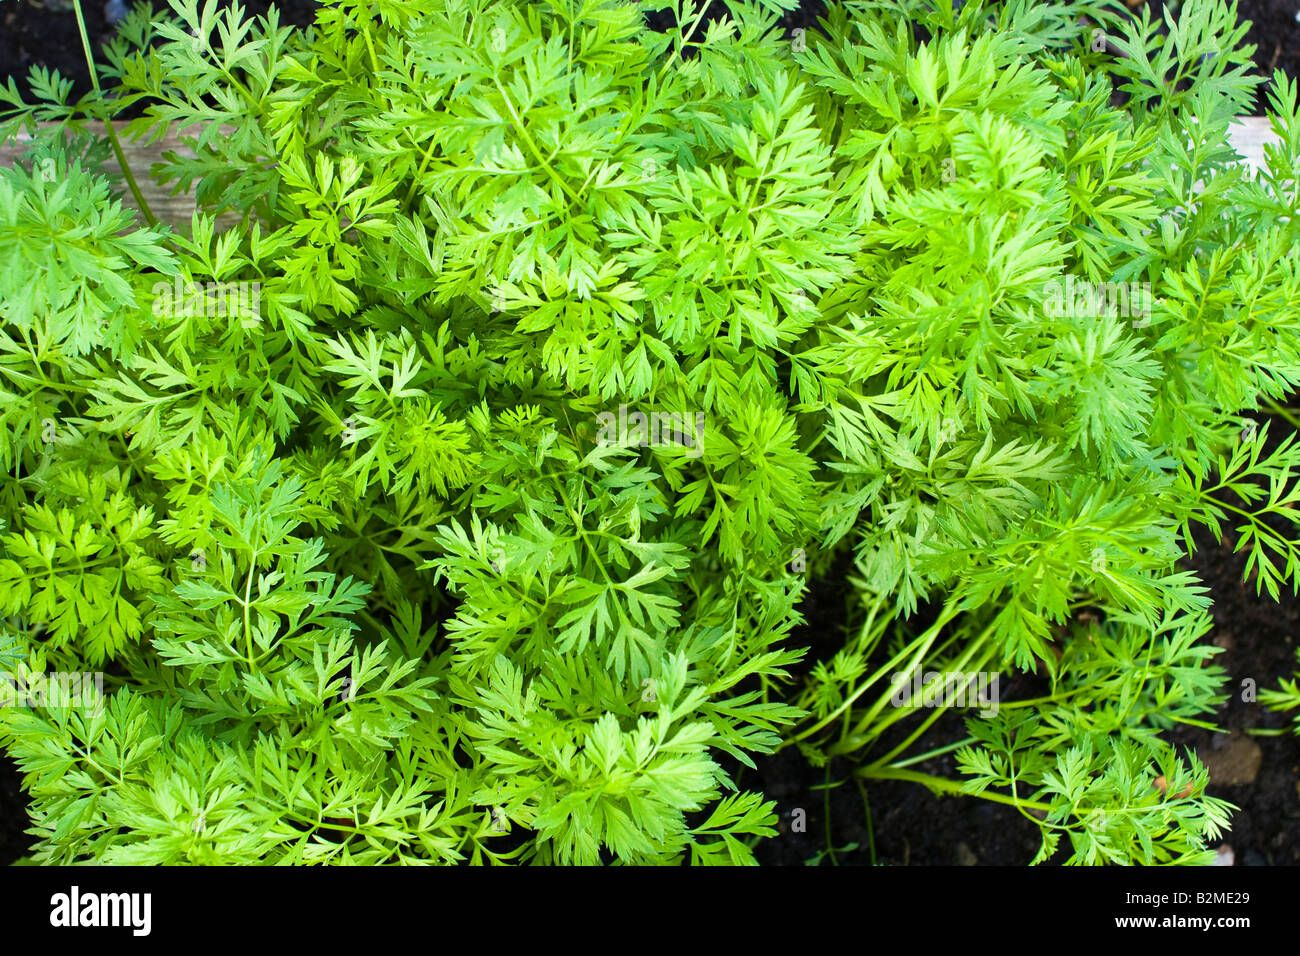 Carrots Growing in the Garden Showing the Leaves or Tops, Kent, England. - Stock Image